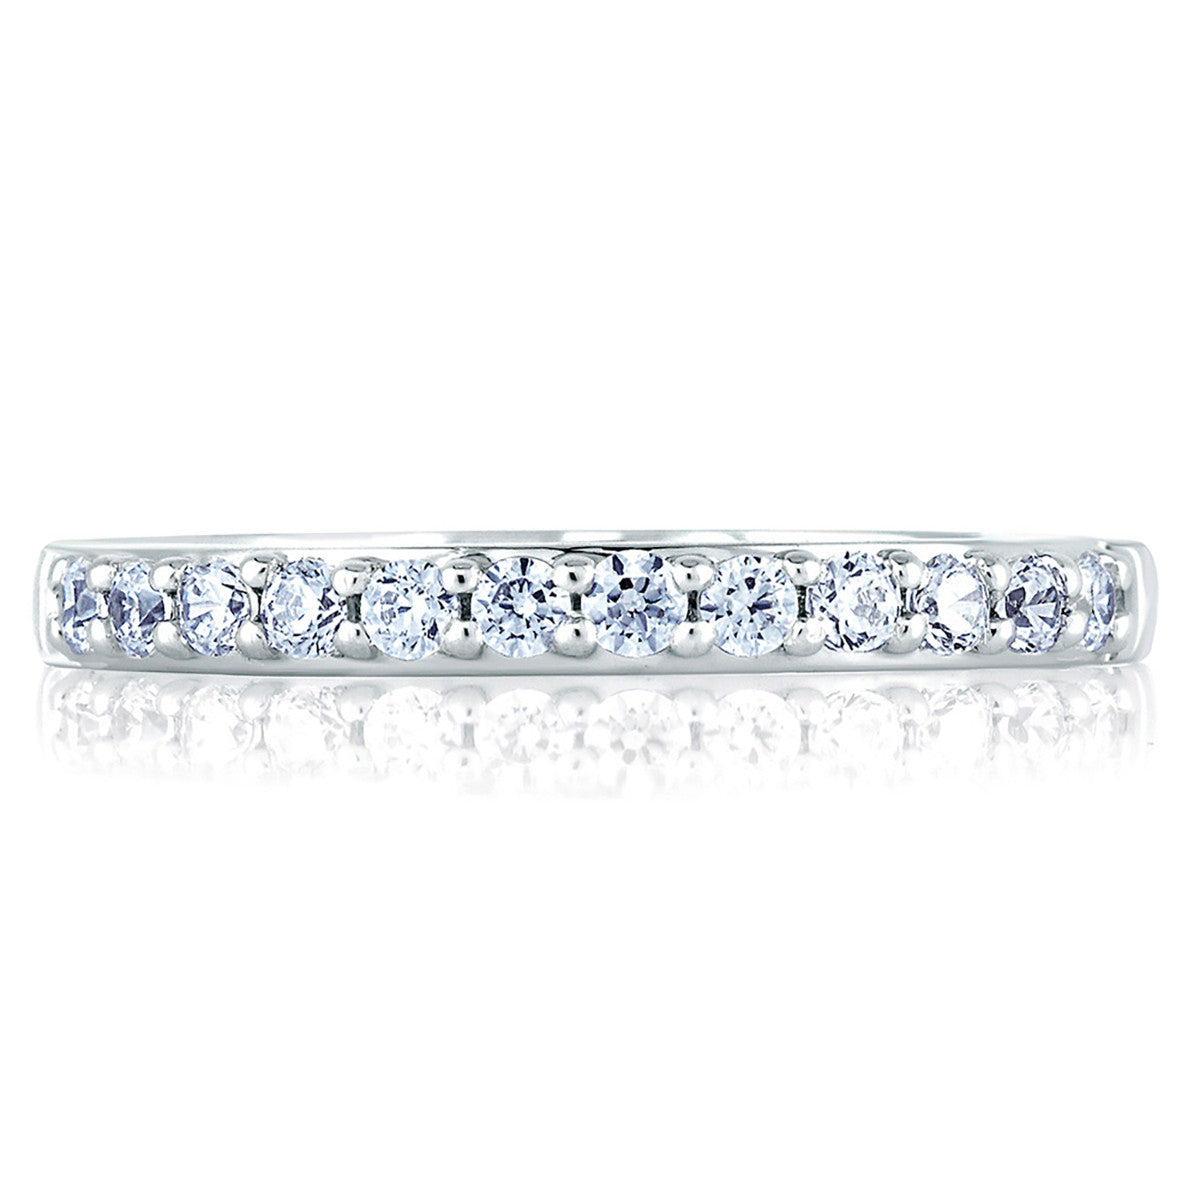 A. Jaffe Classic Prong Set Diamond Wedding Band MR1353/14